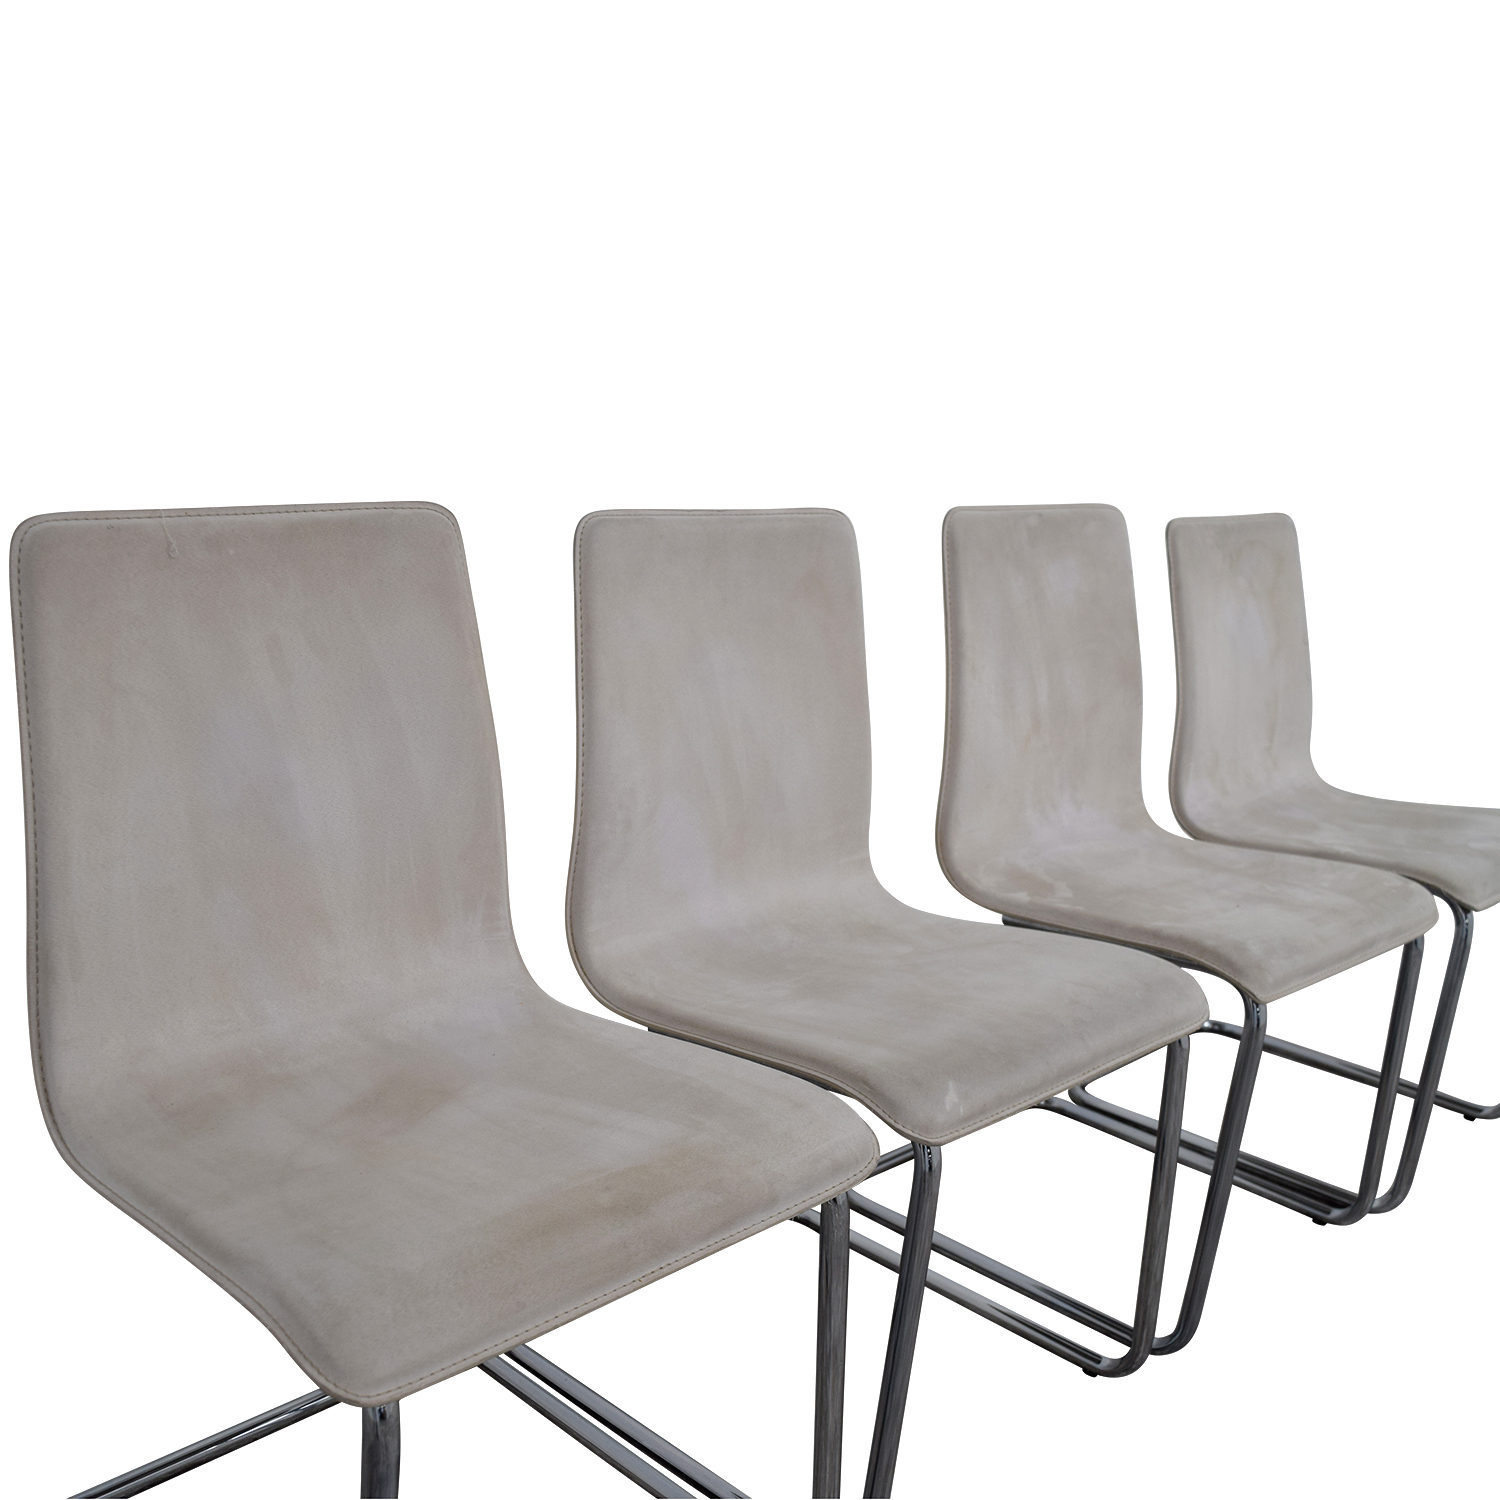 Beau CB2 Pony White Tweed Chairs CB2